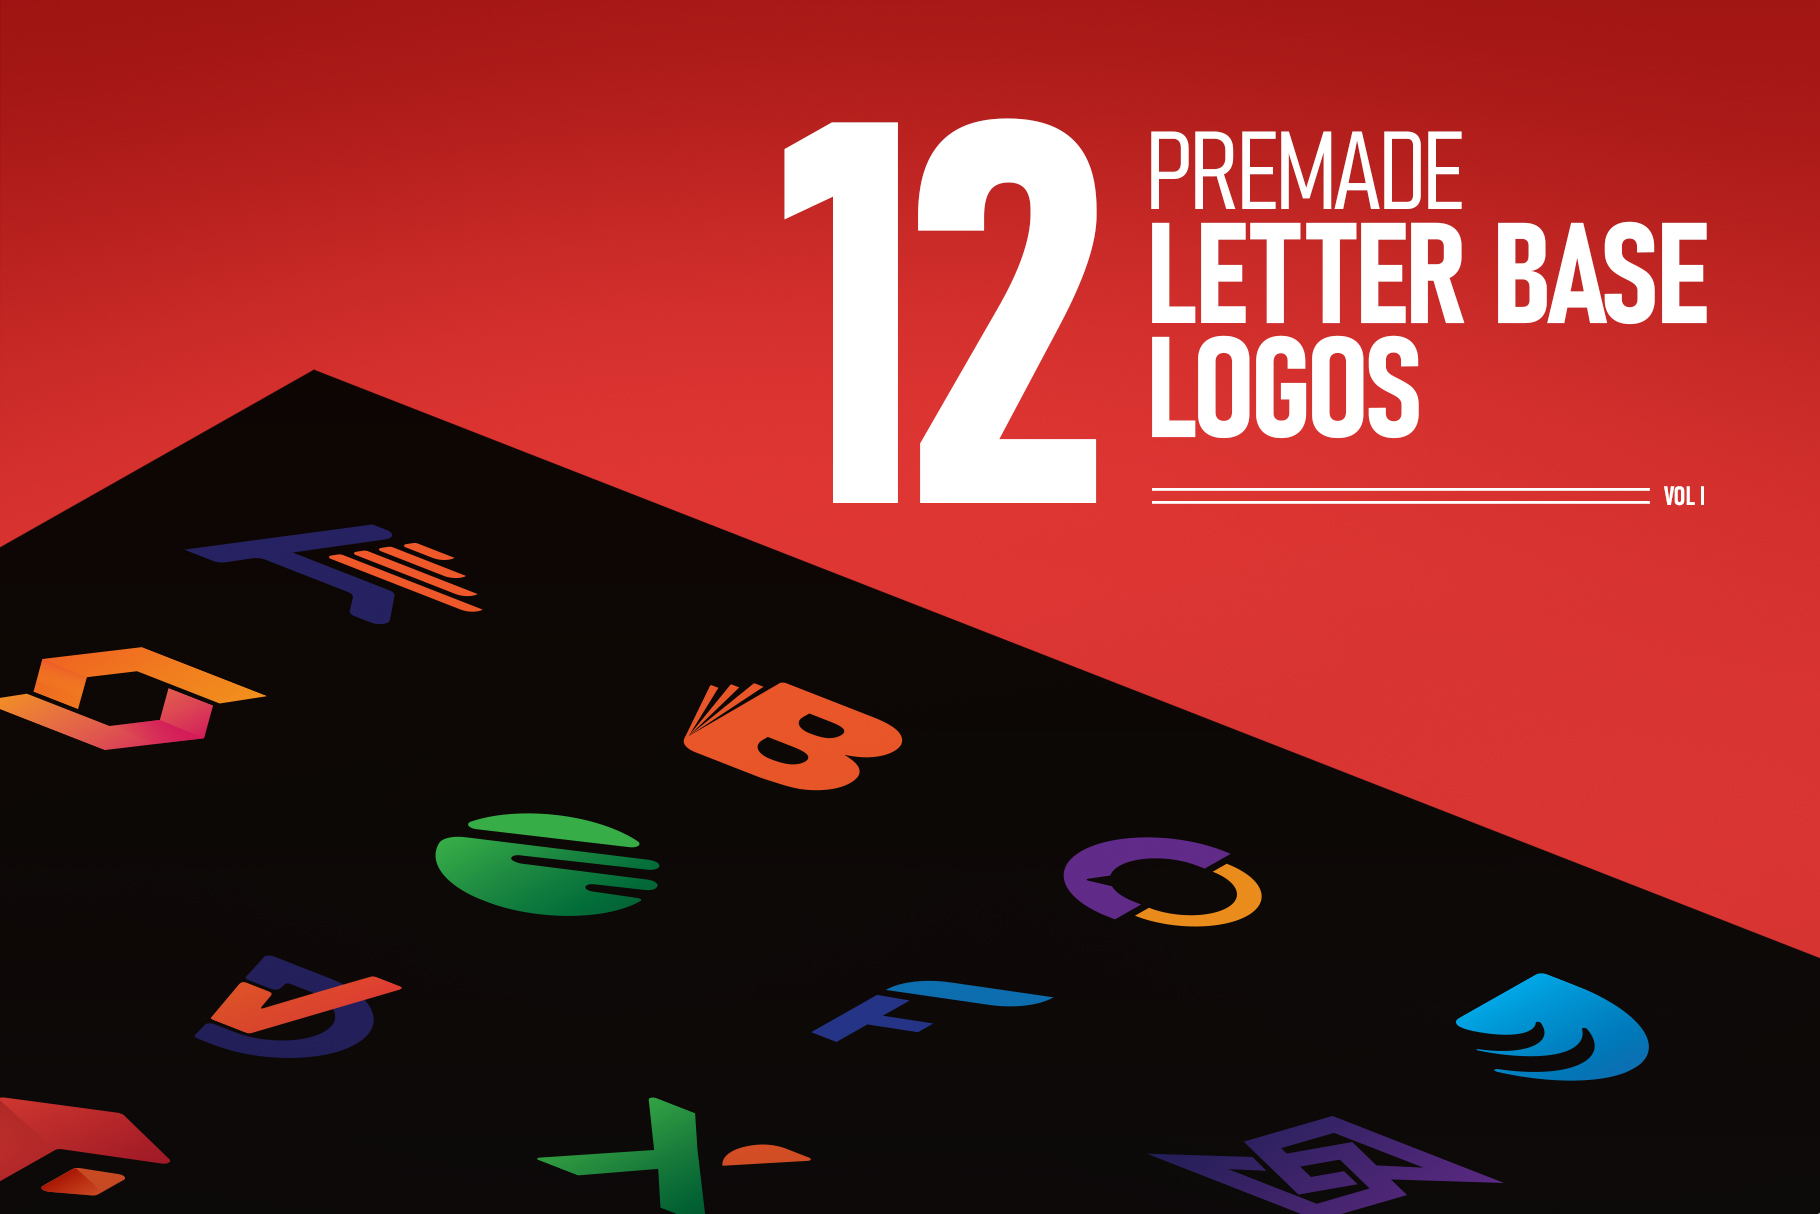 12 Pre-made Letter Base Logos Vol 1